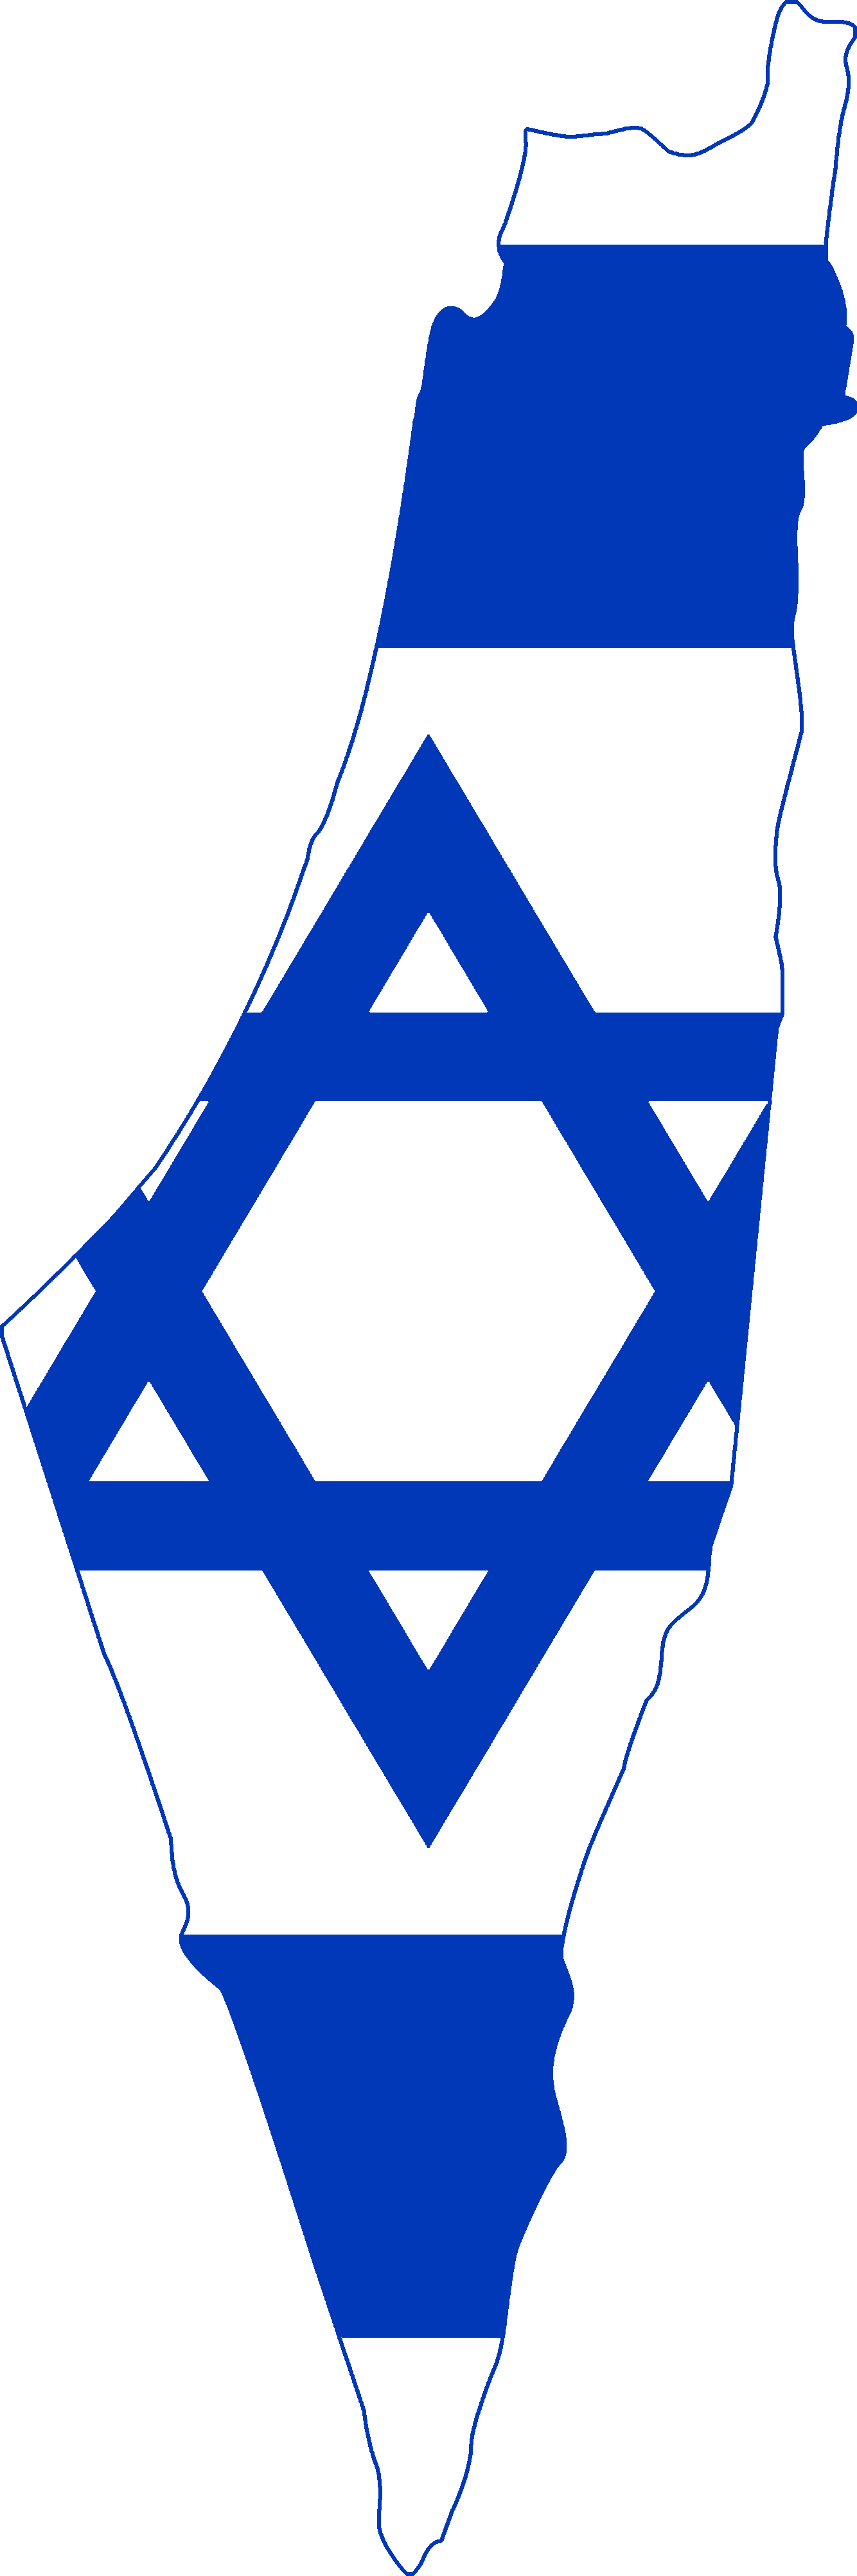 Download Israel Flag Transparent image #45993